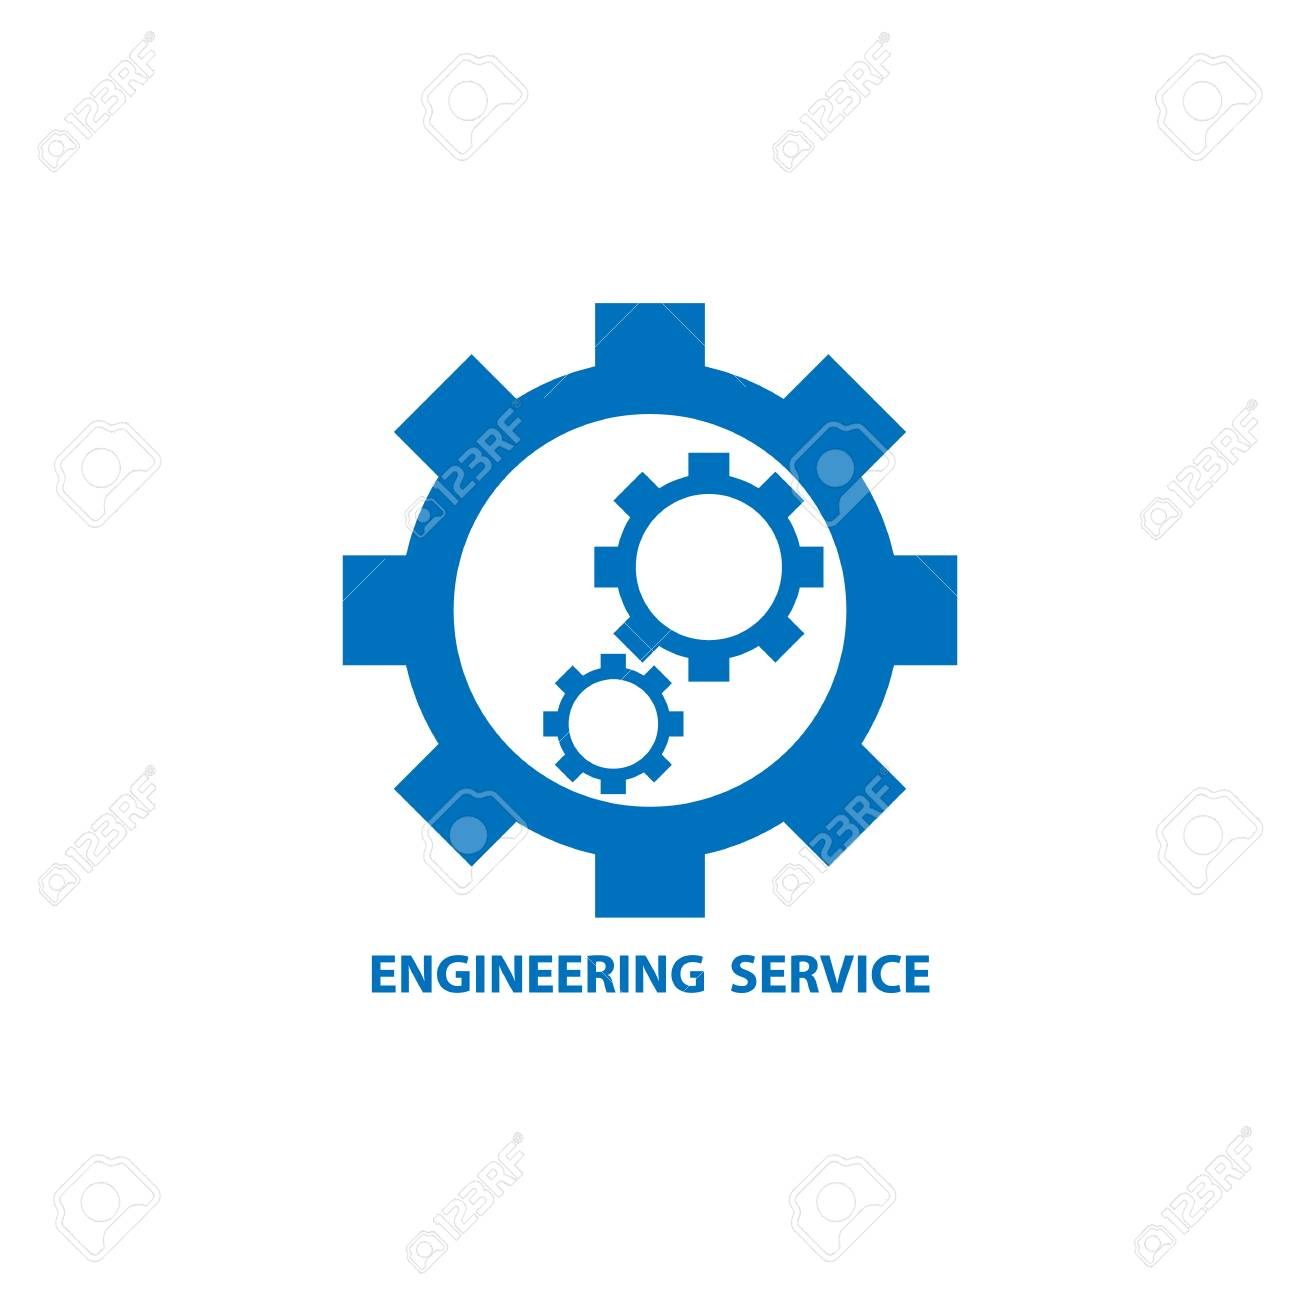 mechanical gear as engineering service icon logo vector graphic rh 123rf com mechanical engineering logo images mechanical engineering logos and symbols